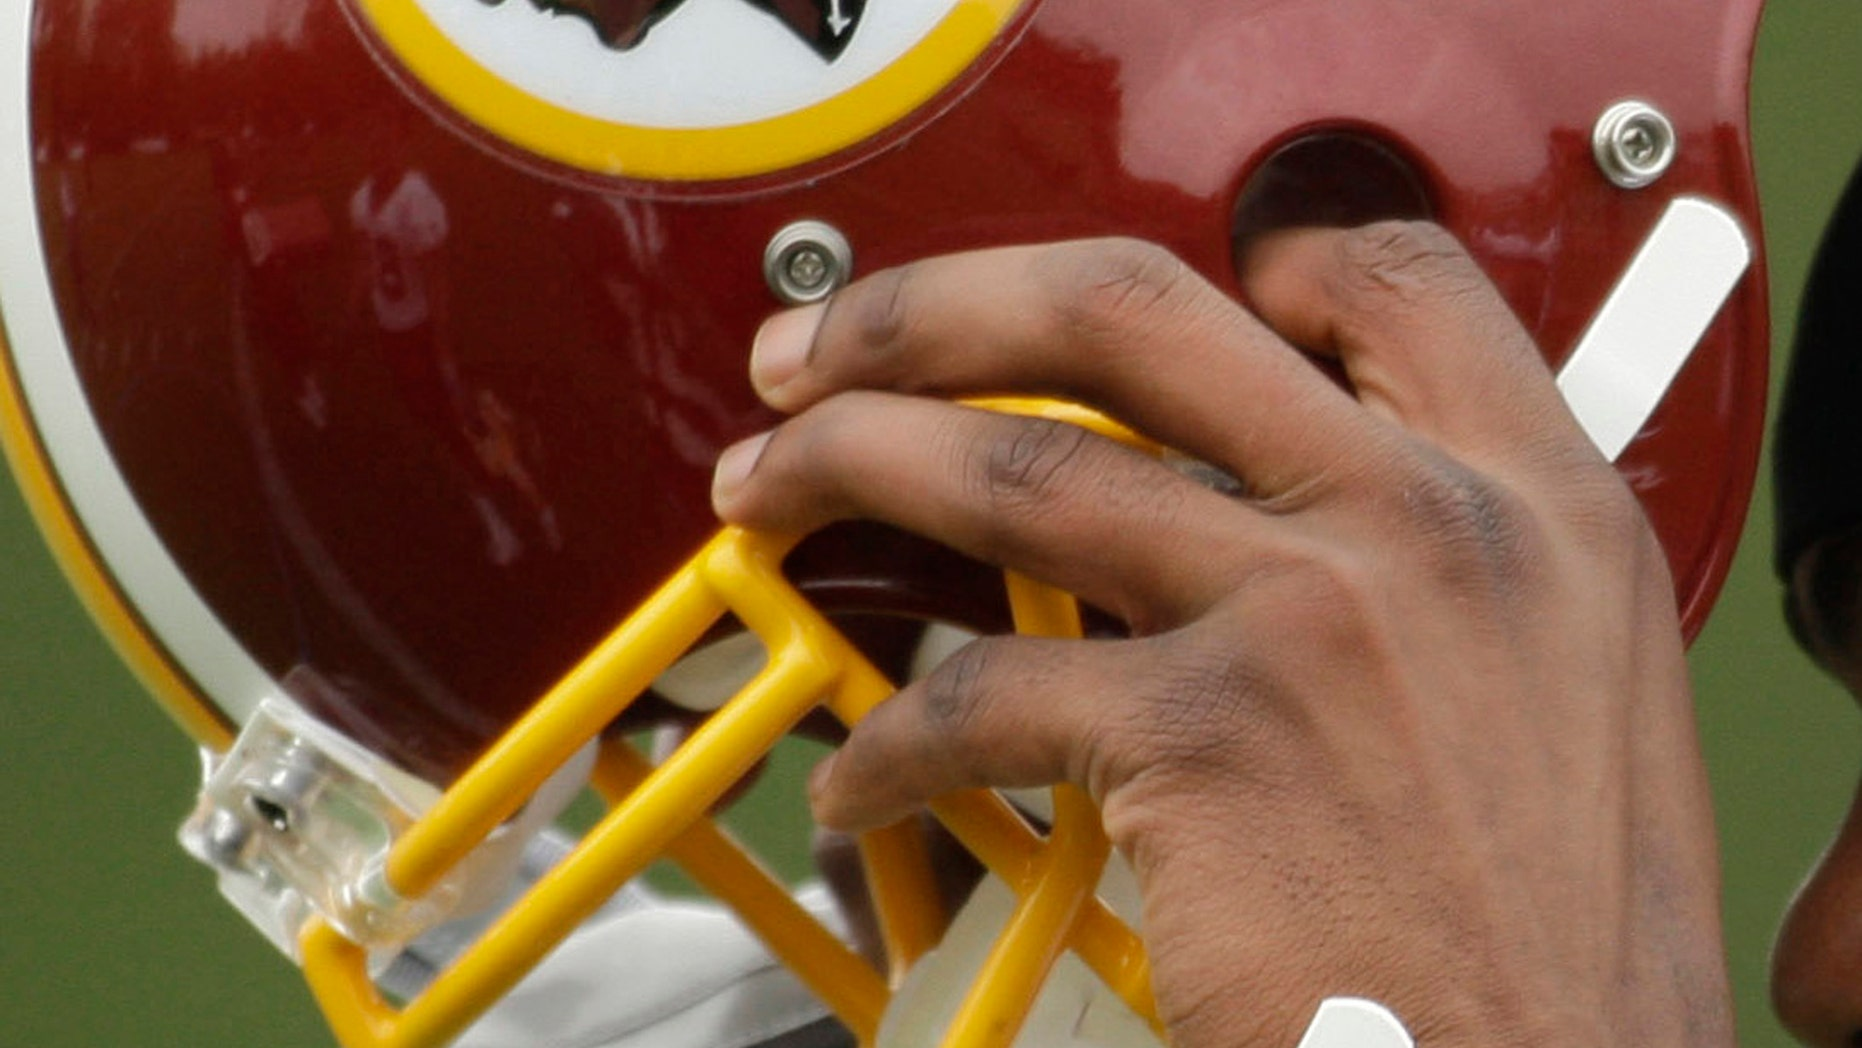 In this file photo, Washington Redskins Marko Mitchell puts his helmet on during their NFL football minicamp practice at their training facility in Ashburn, Va.